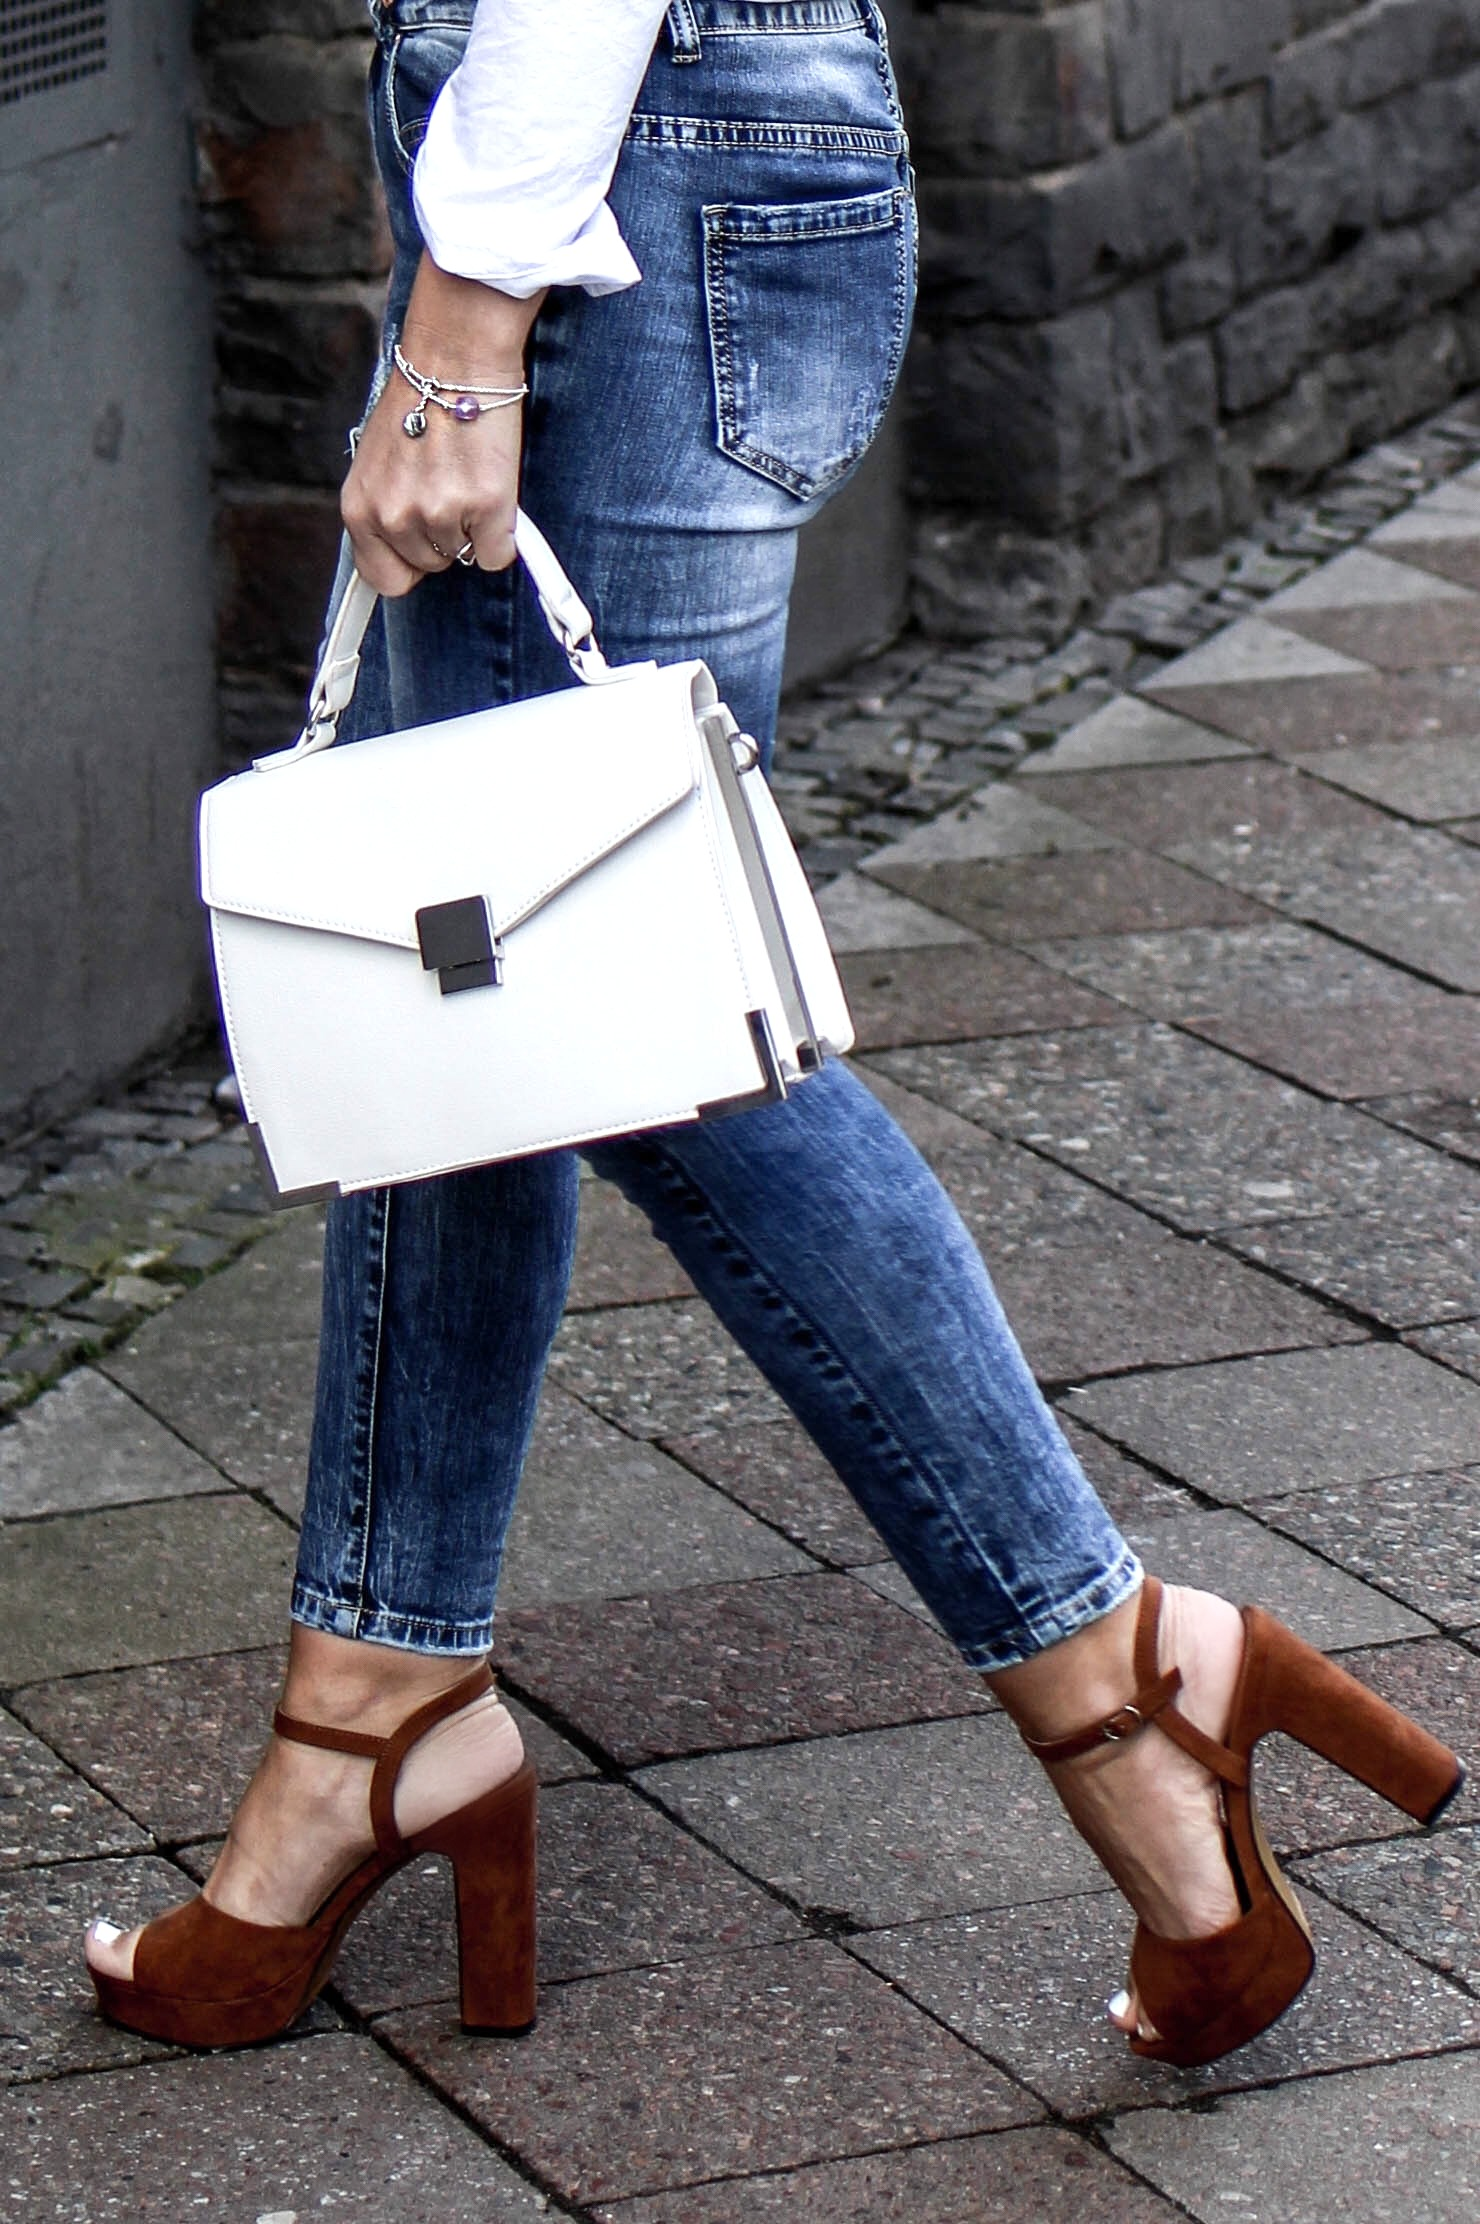 Fashioncircuz by Jenny fashioncircuz_jenny_streetstyle_chicwis_grethe_winter_details In Jeans und Bluse durch den Frühling